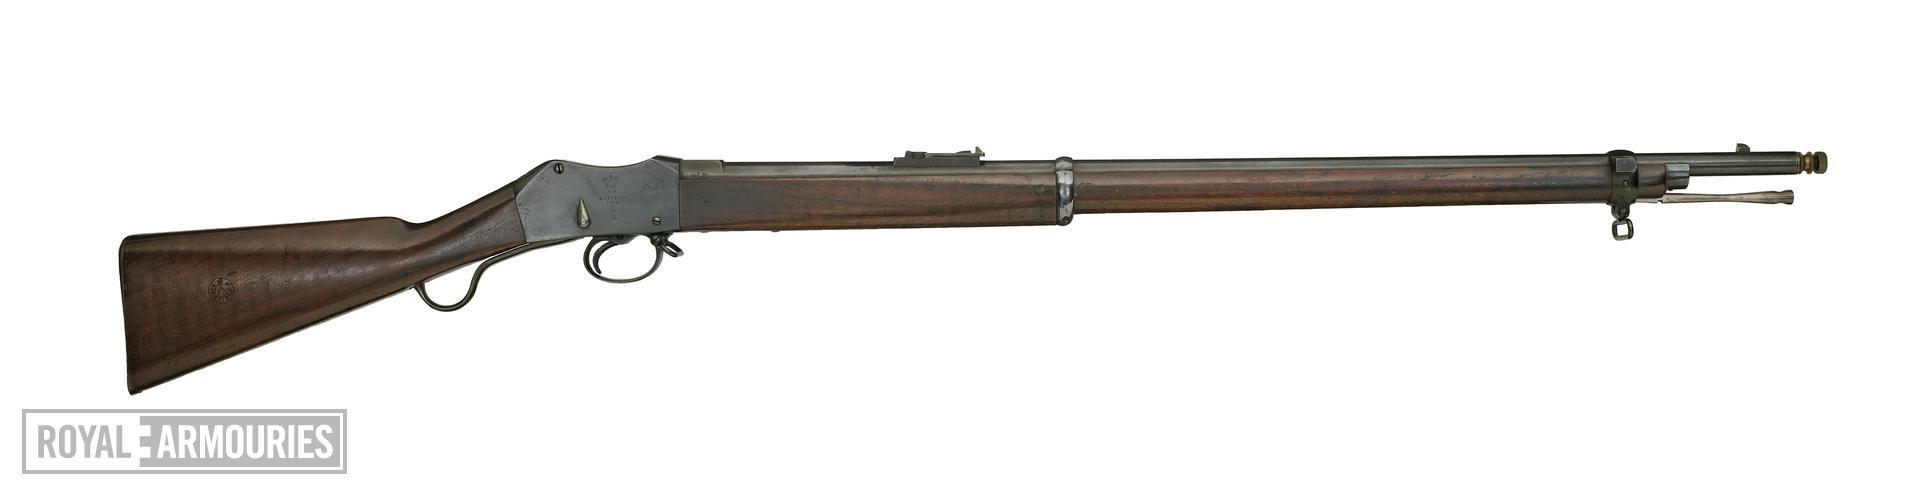 Centrefire breech-loading rifle - Martini-Henry Mk.III, sealed pattern Made at Enfield RSAF